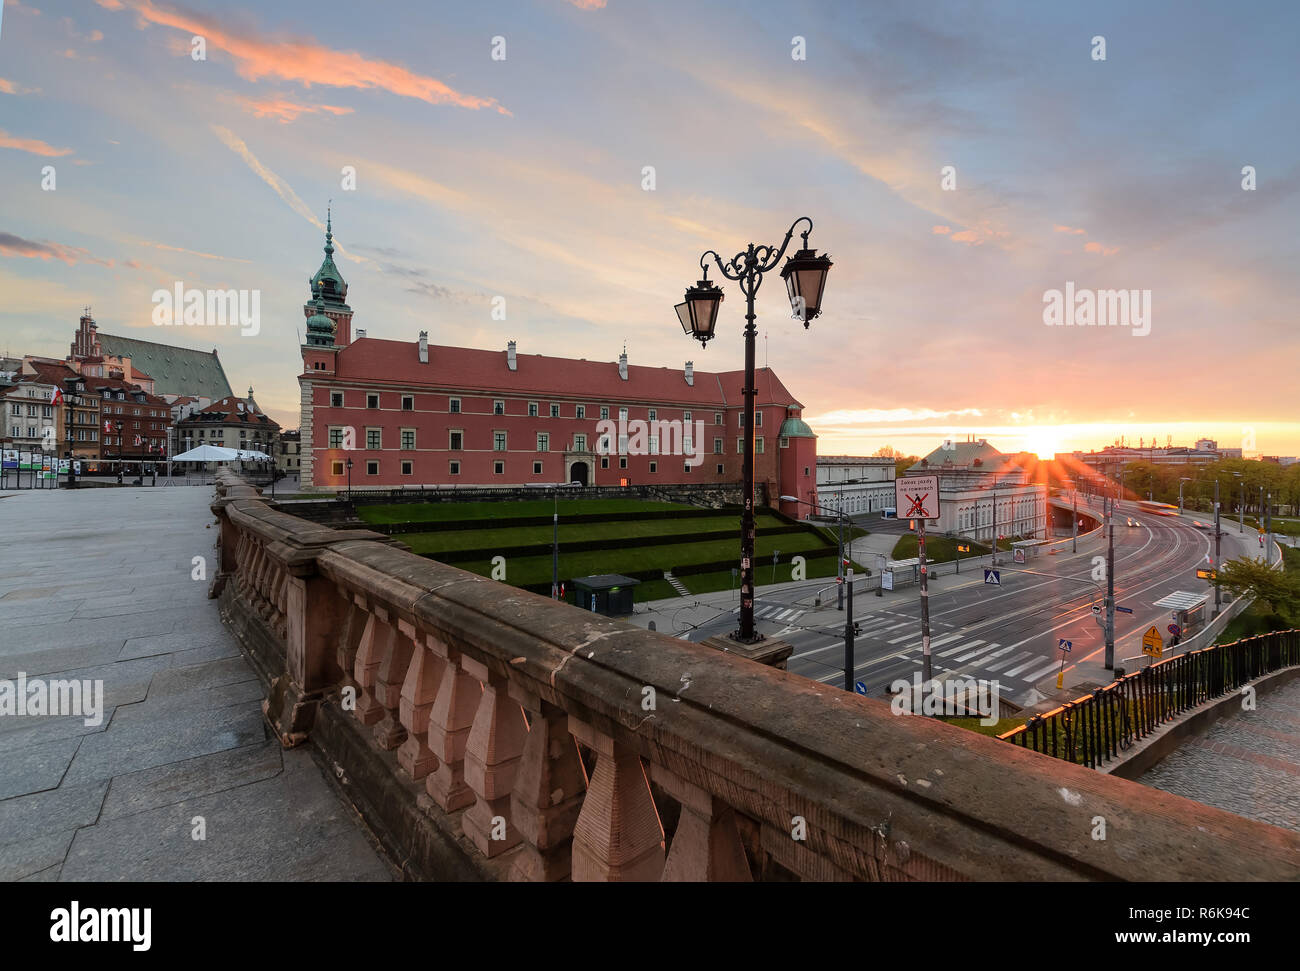 Royal castle in old town of Warsaw, Poland, Europe in sunrise time. - Stock Image